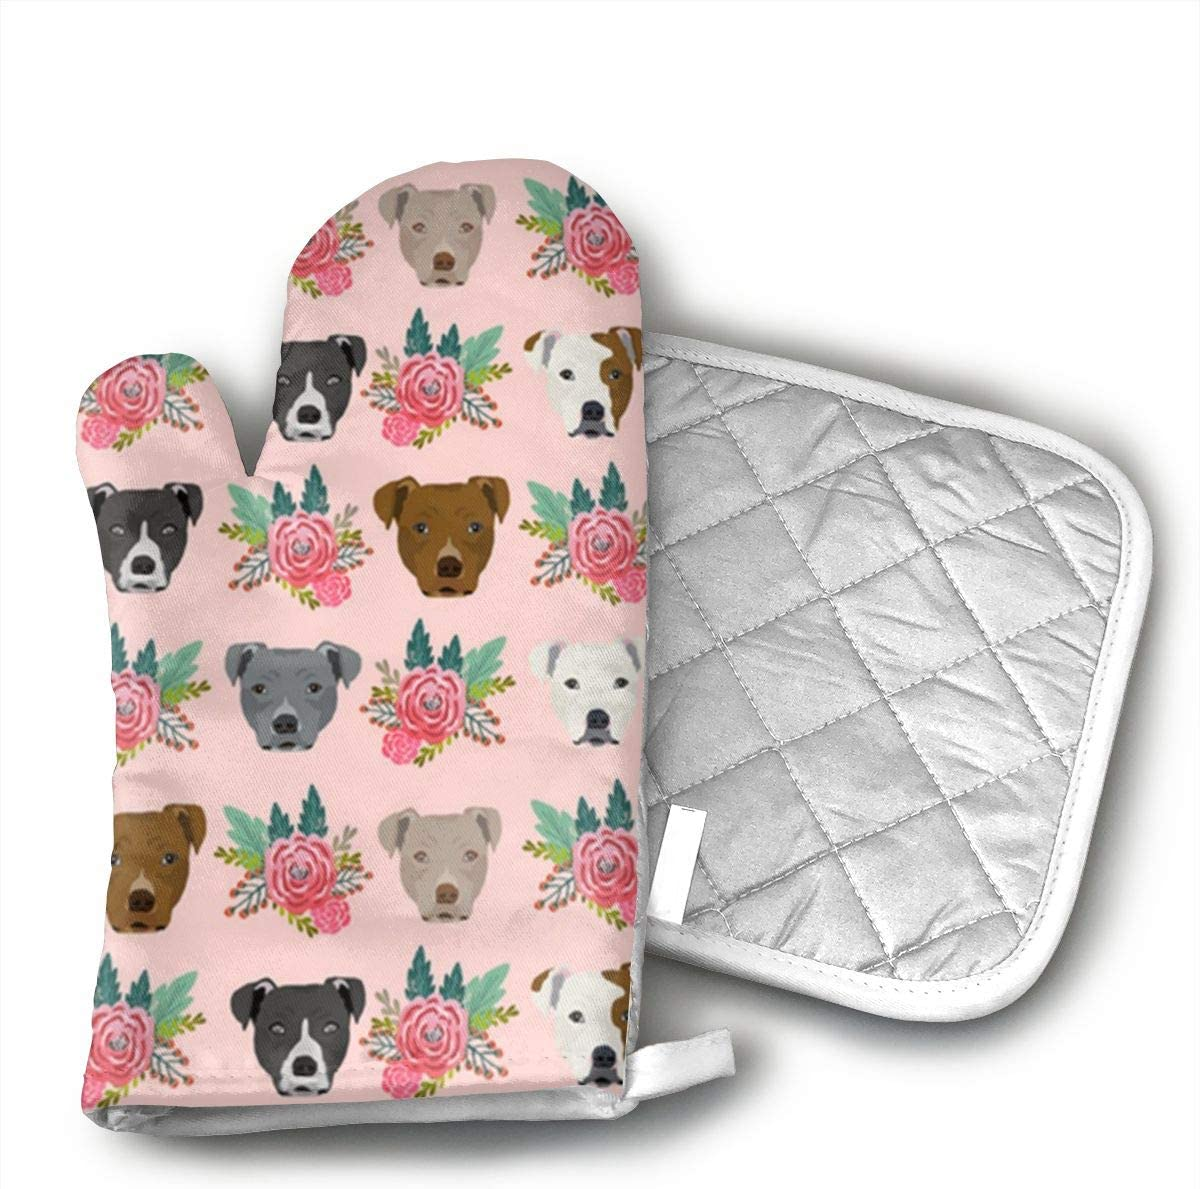 STRWBfhk Pitbull Floral Head Oven Mitts,Kitchen Oven Glove Suitable for Baking, Grilling, Cooking, Barbecue